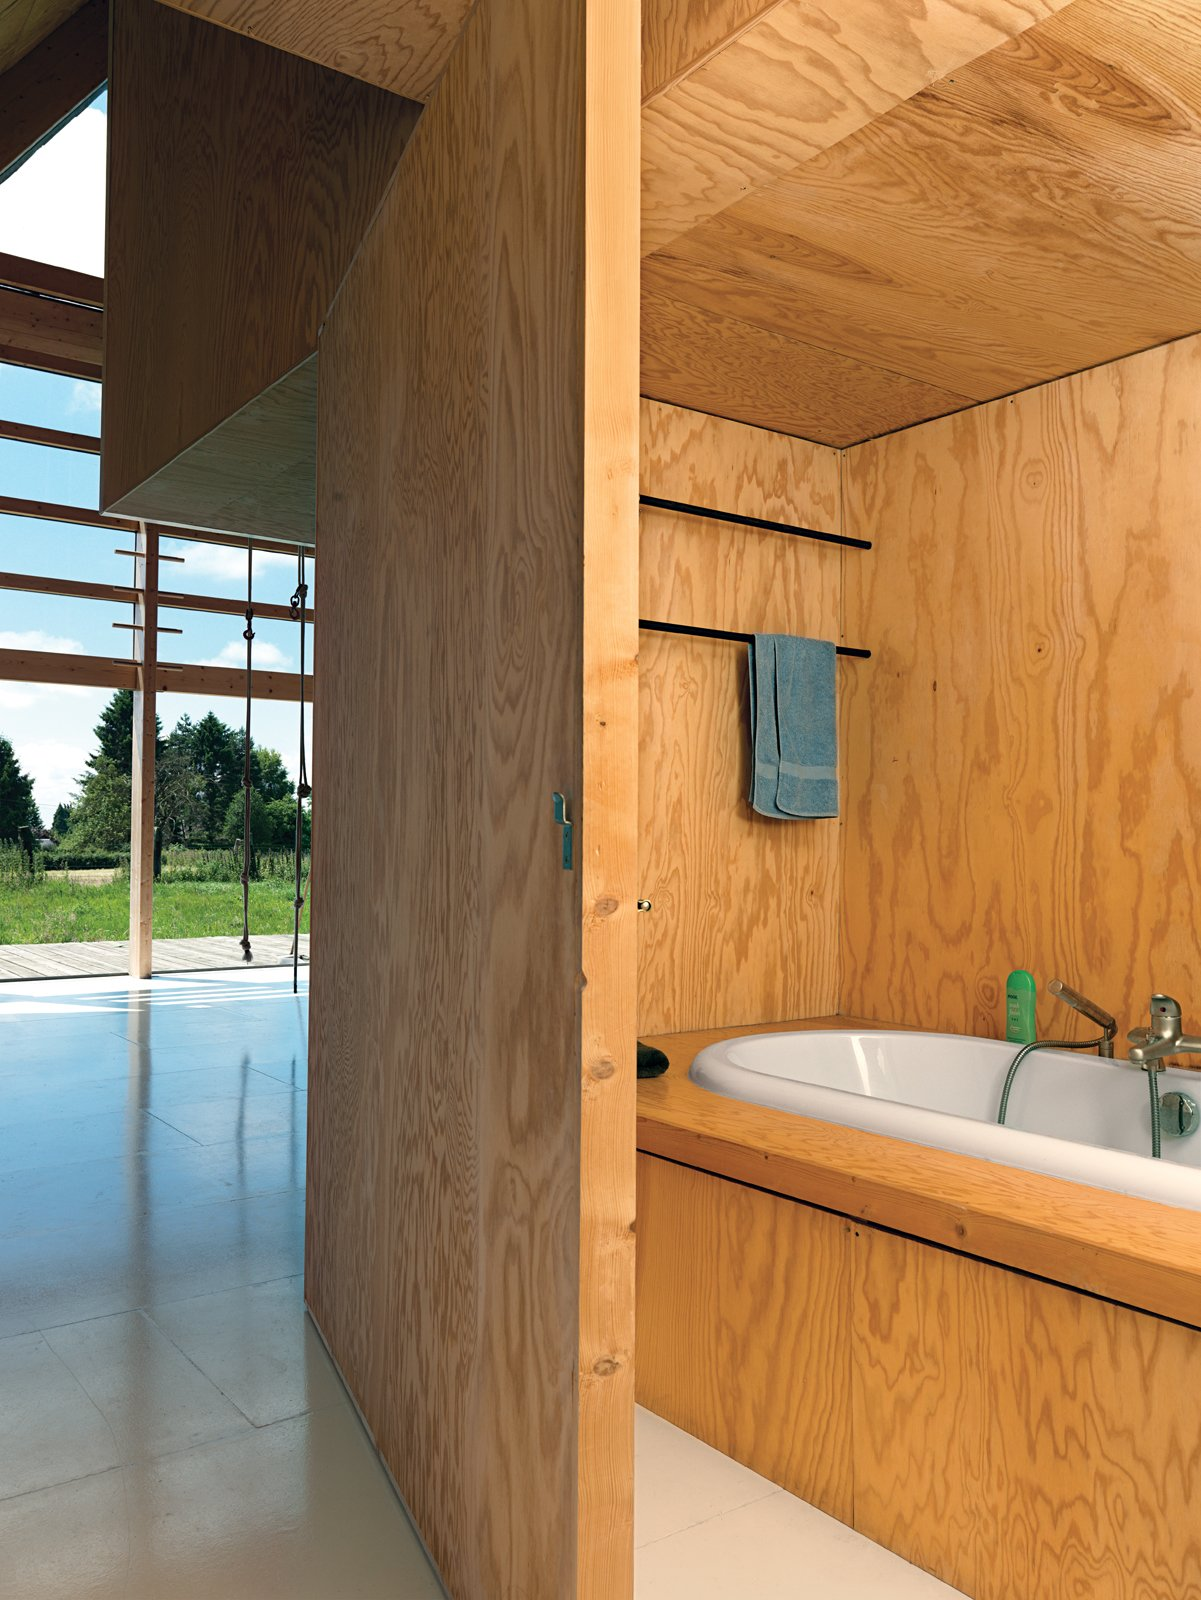 Cubic bookshelves do double duty as a dividing wall and as a sliding door opening up to a hidden bath.  Photo 3 of 11 in Modern Wooden A-Frame Retreat in France